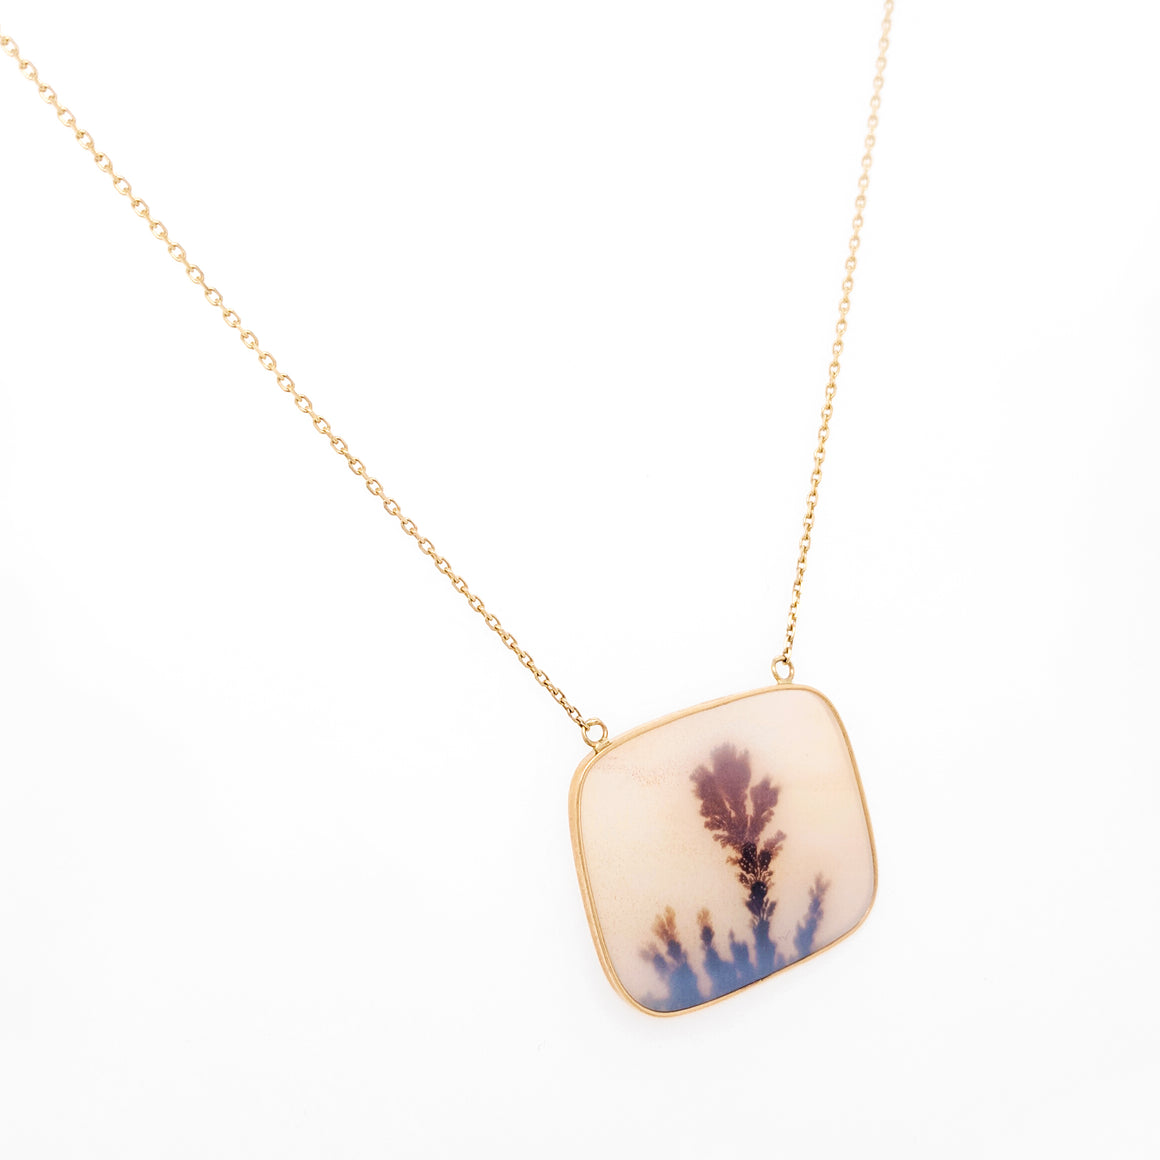 14K Yellow Gold Dendritic Quartz Necklace